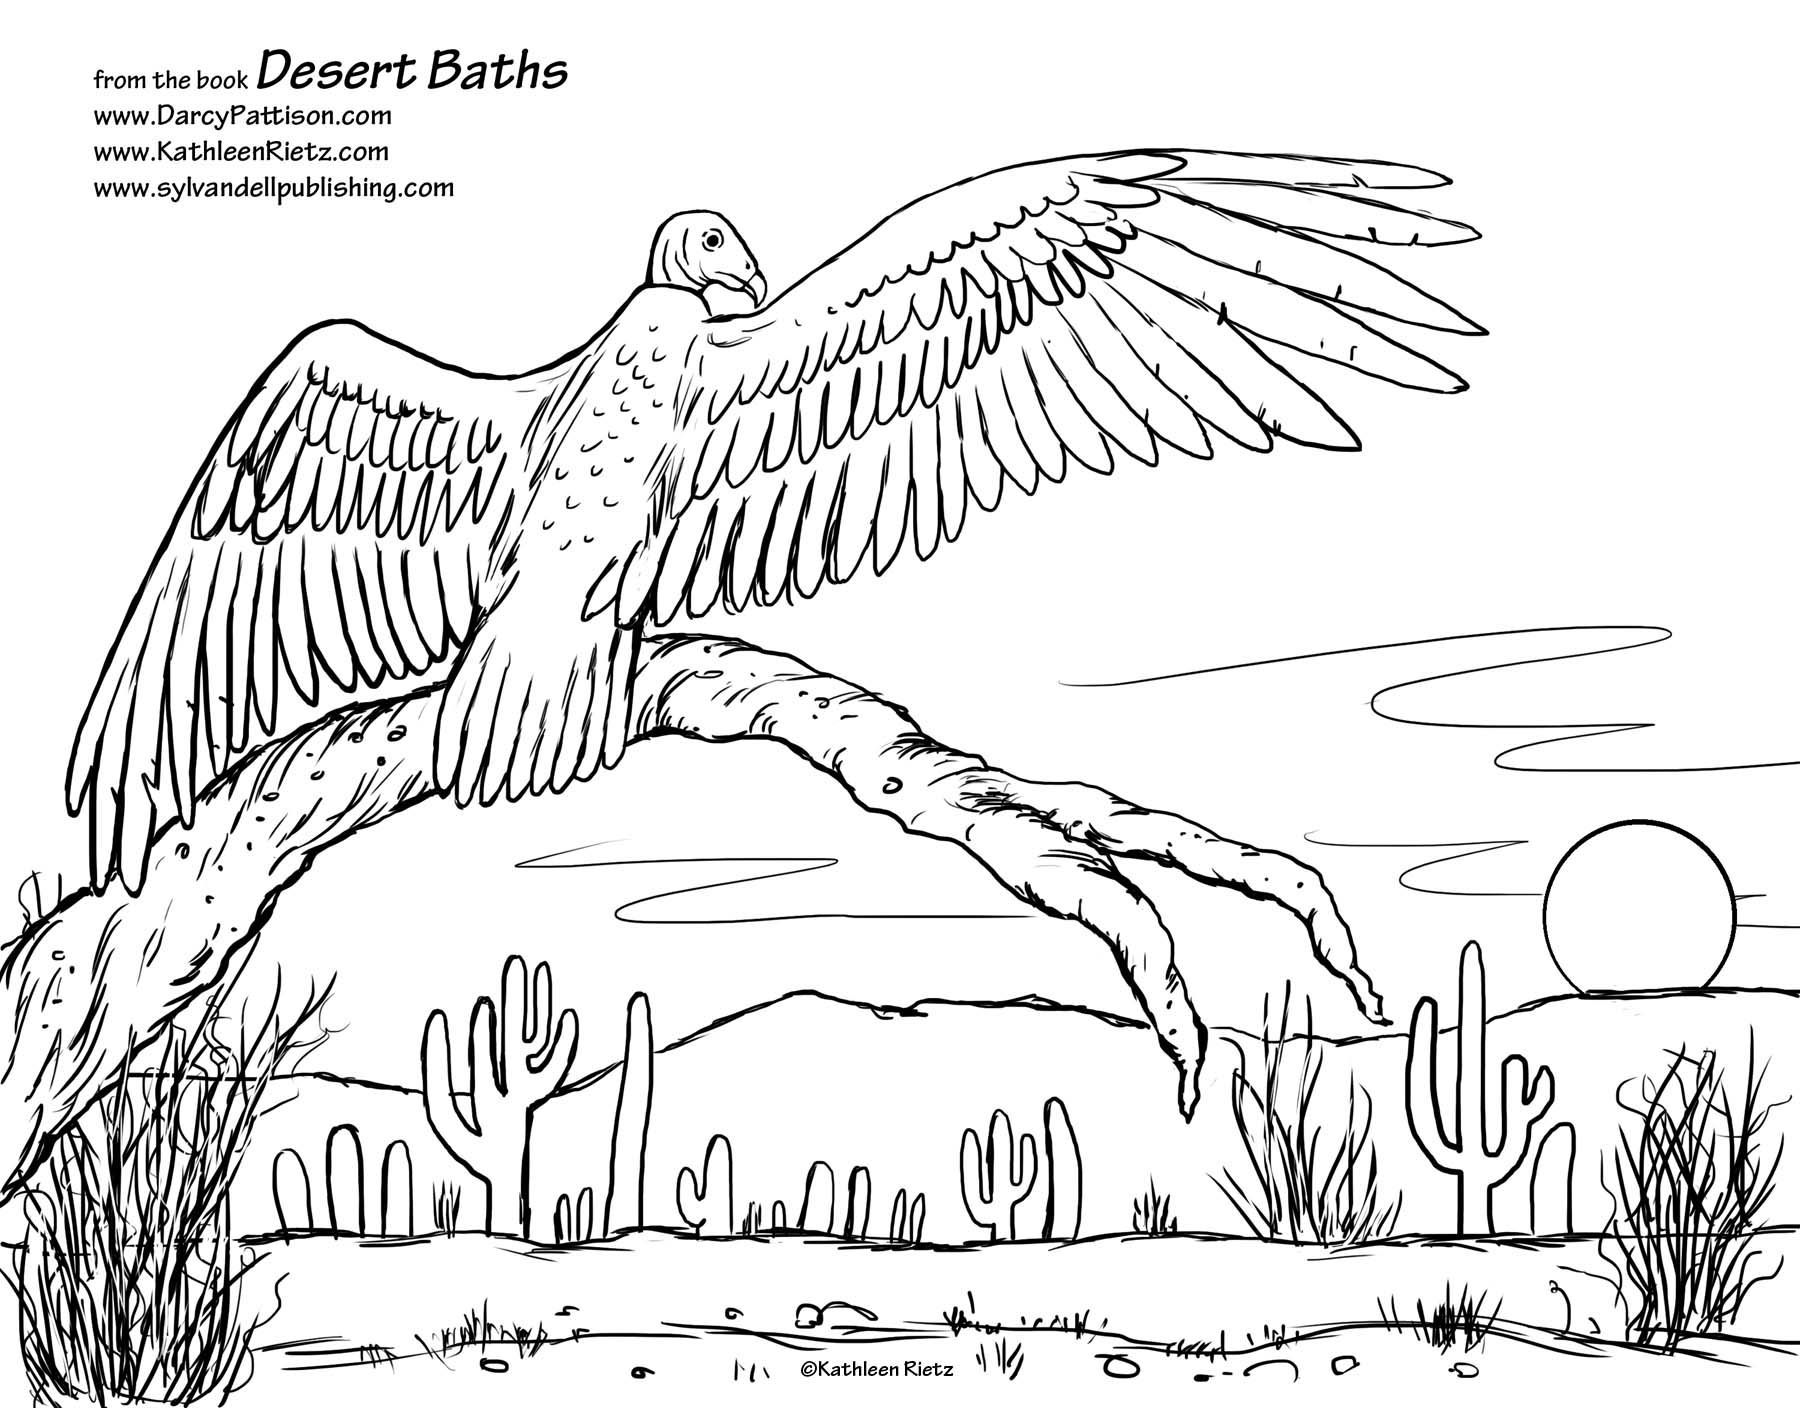 street art coloring pages Have you ever wondered how